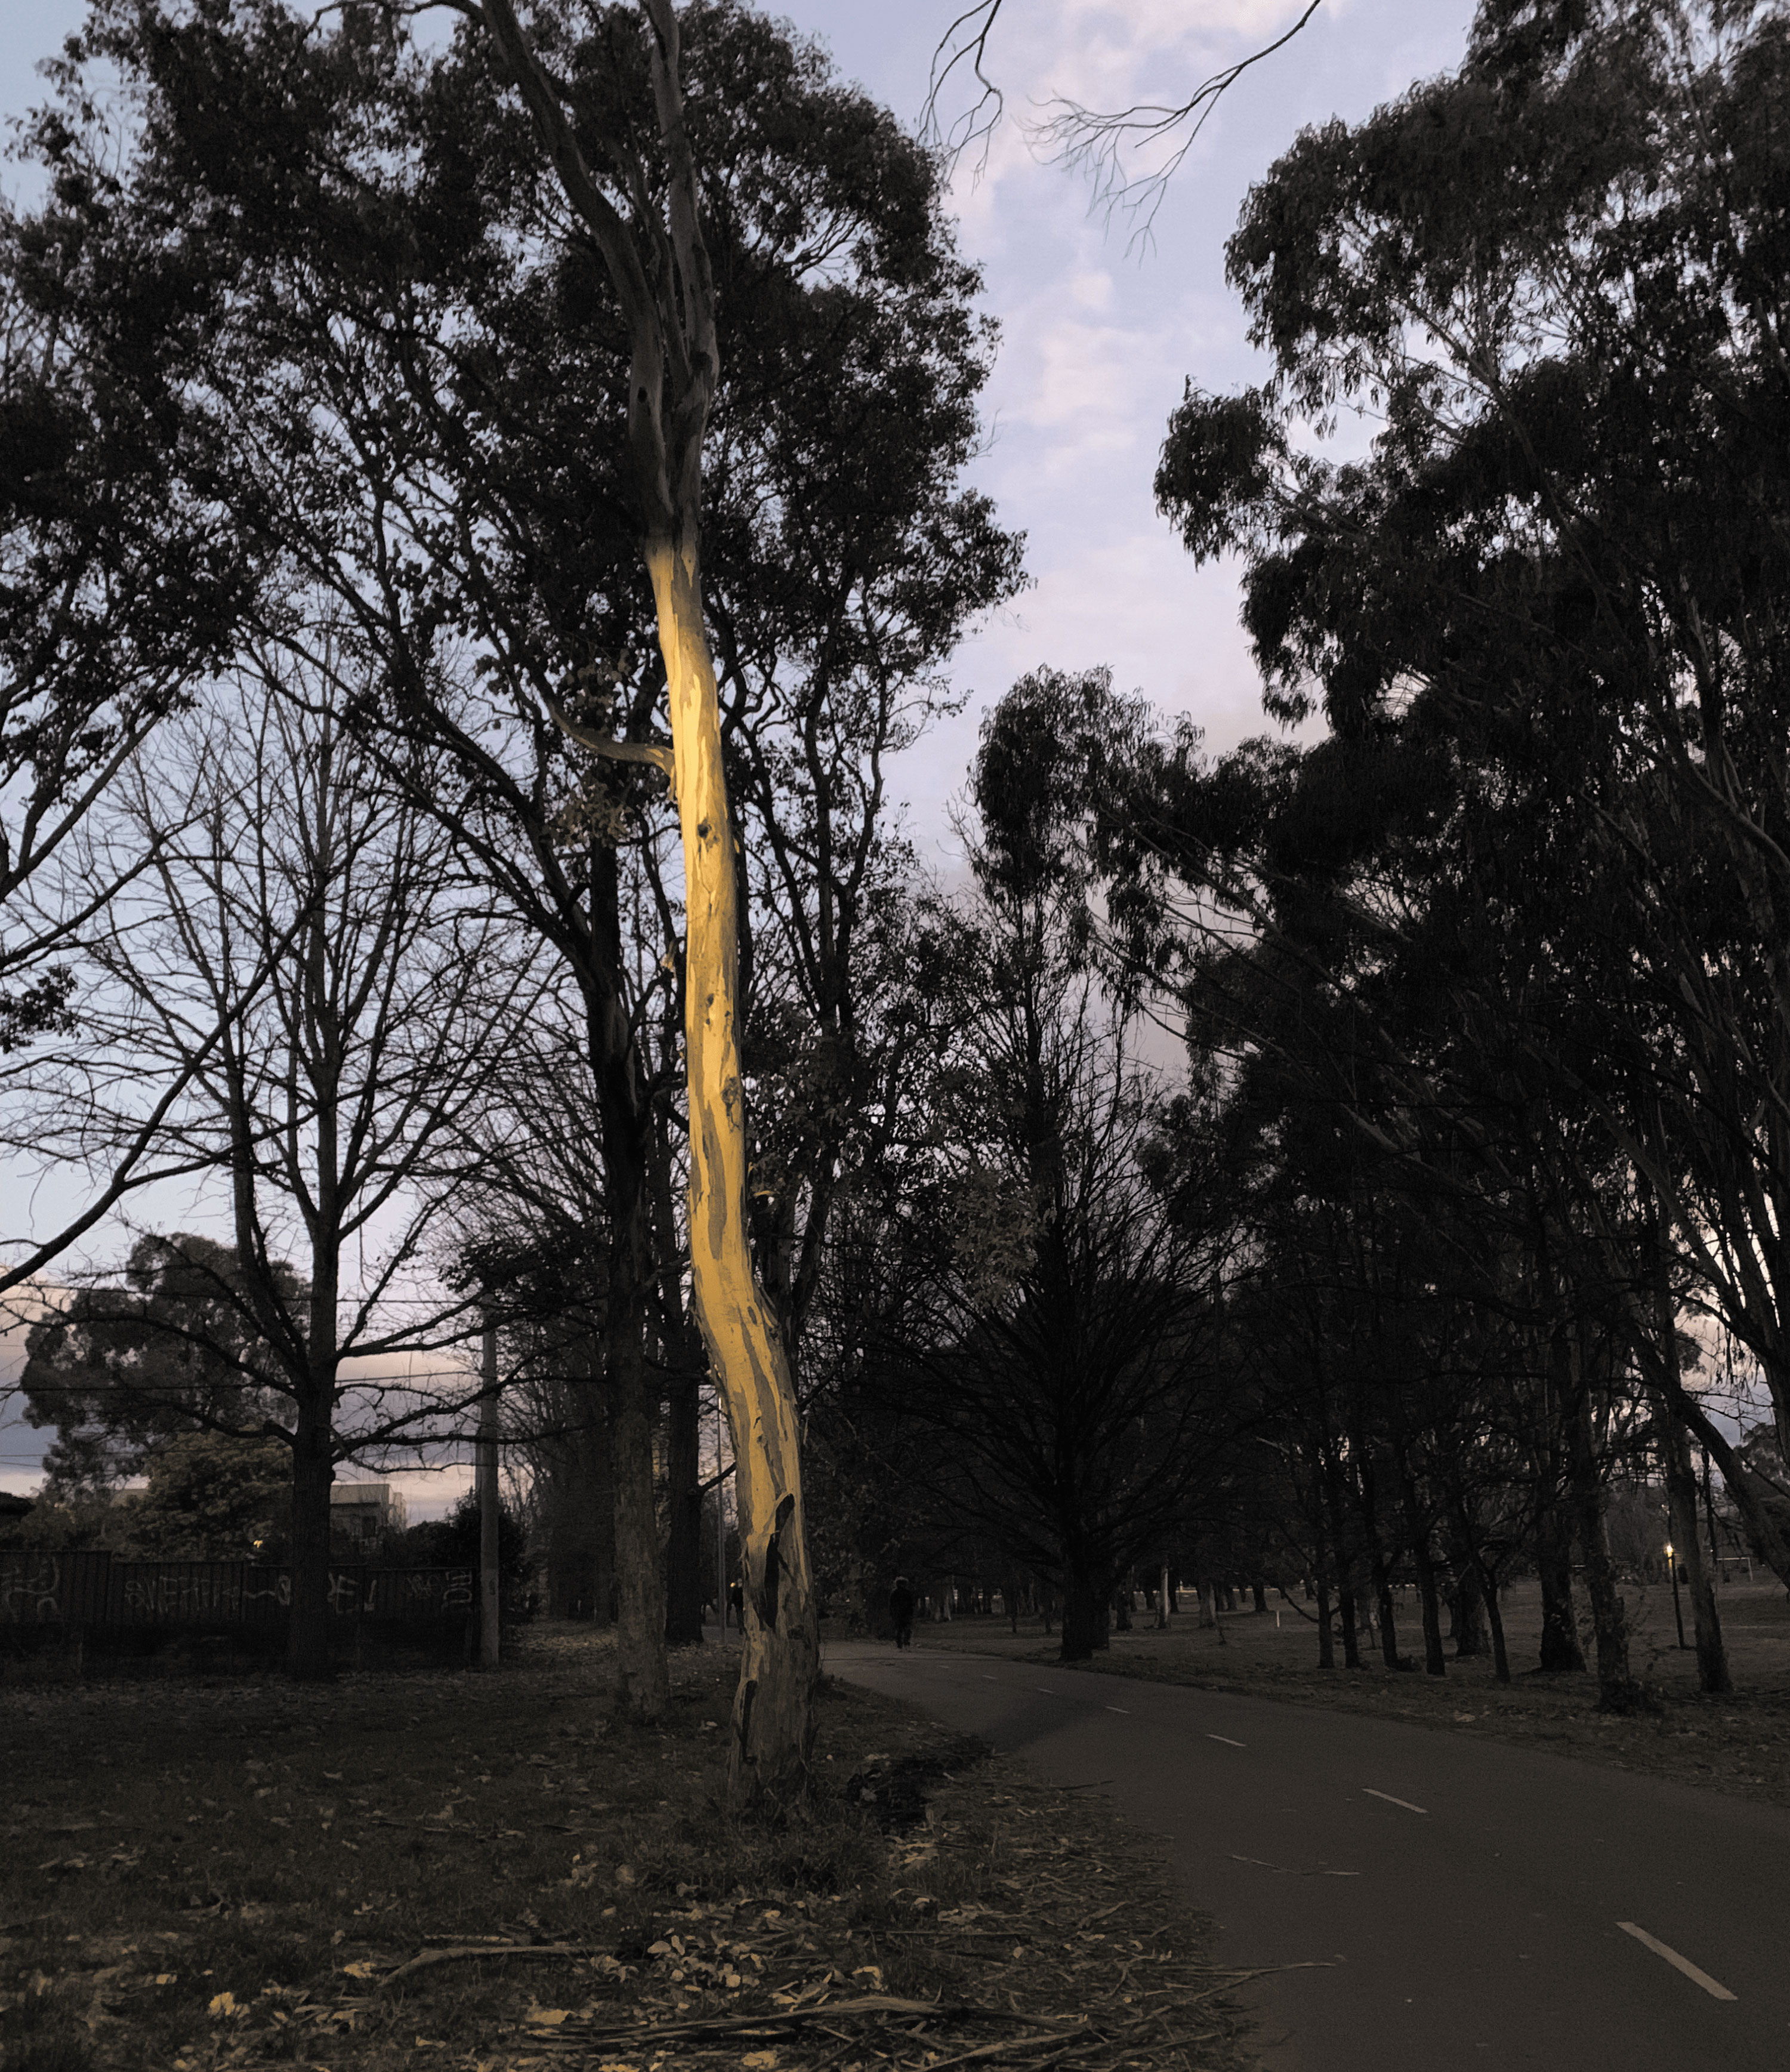 photo of a gumtree with a sweet light reflecting in its peeling bark